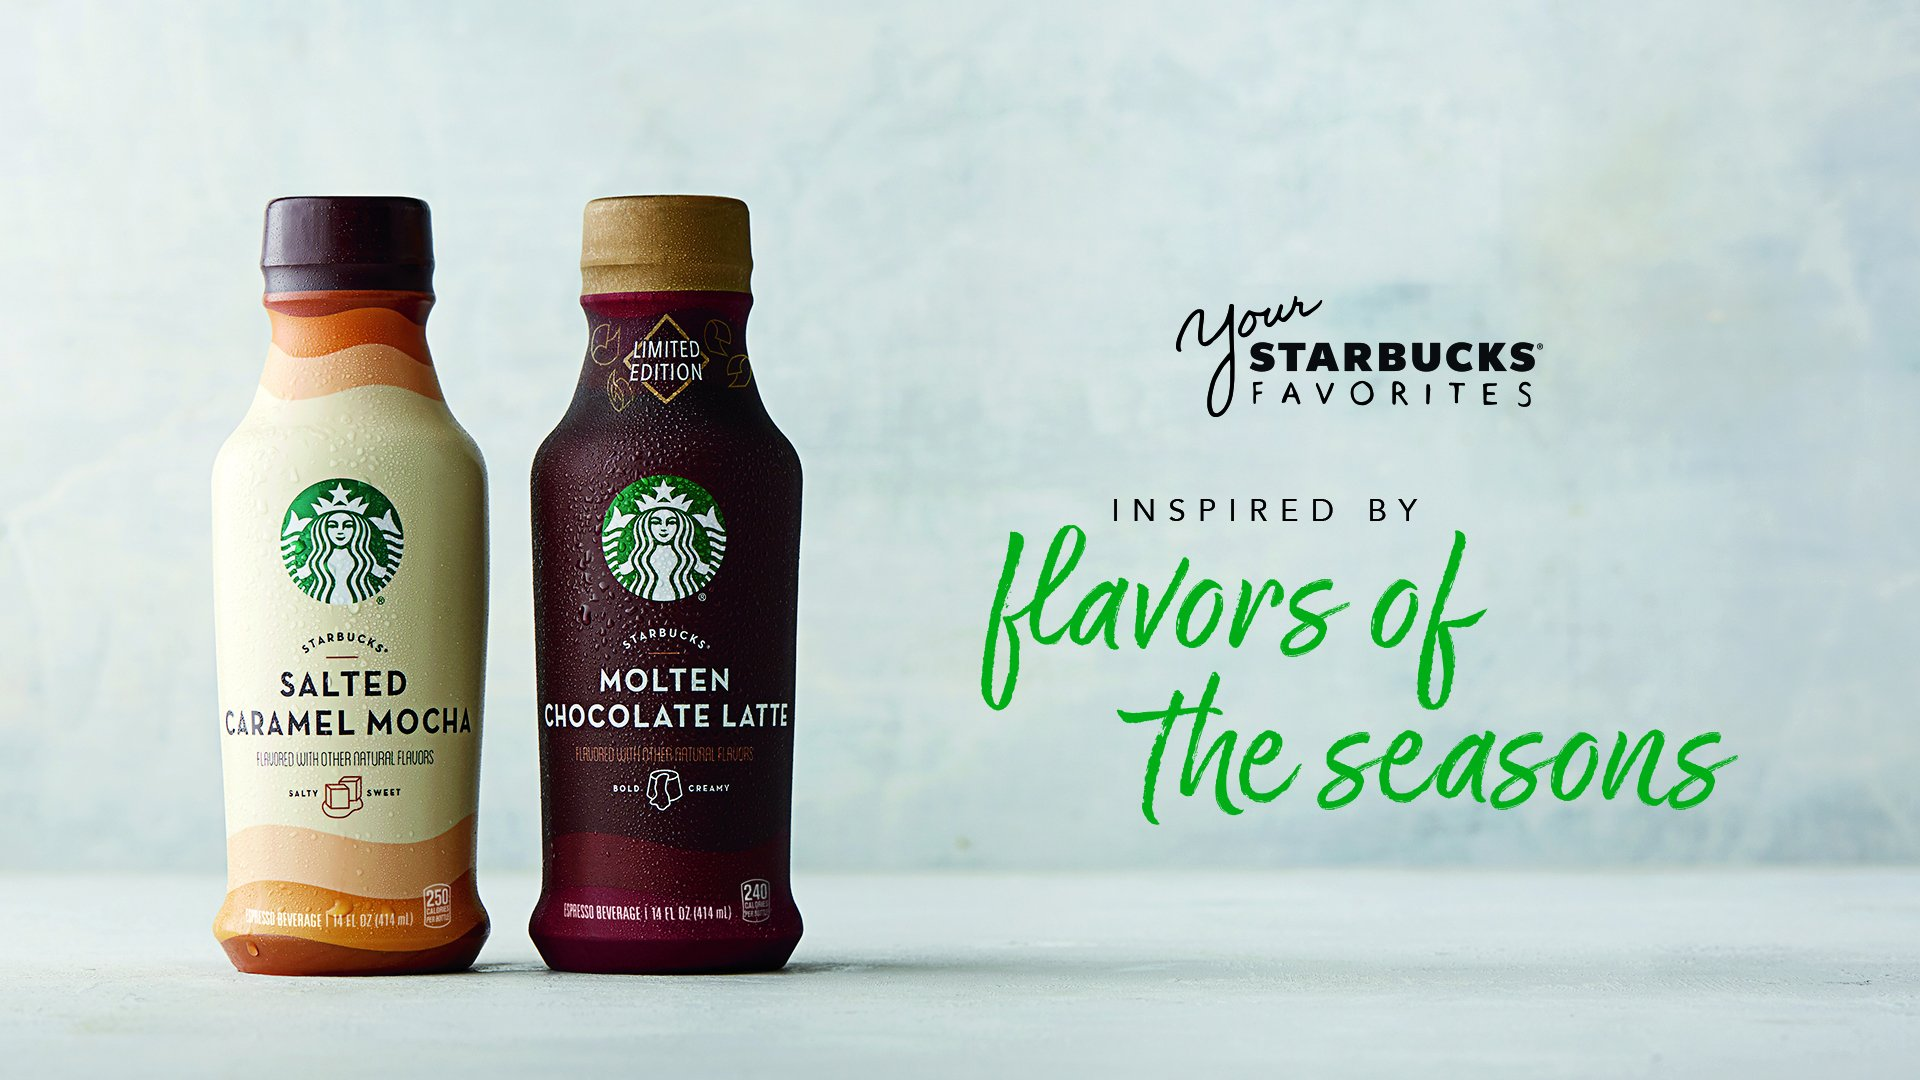 Starbucks Iced Coffee Latte, Molten Chocolate, 14 Ounce, 8 Bottles by Starbucks (Image #3)